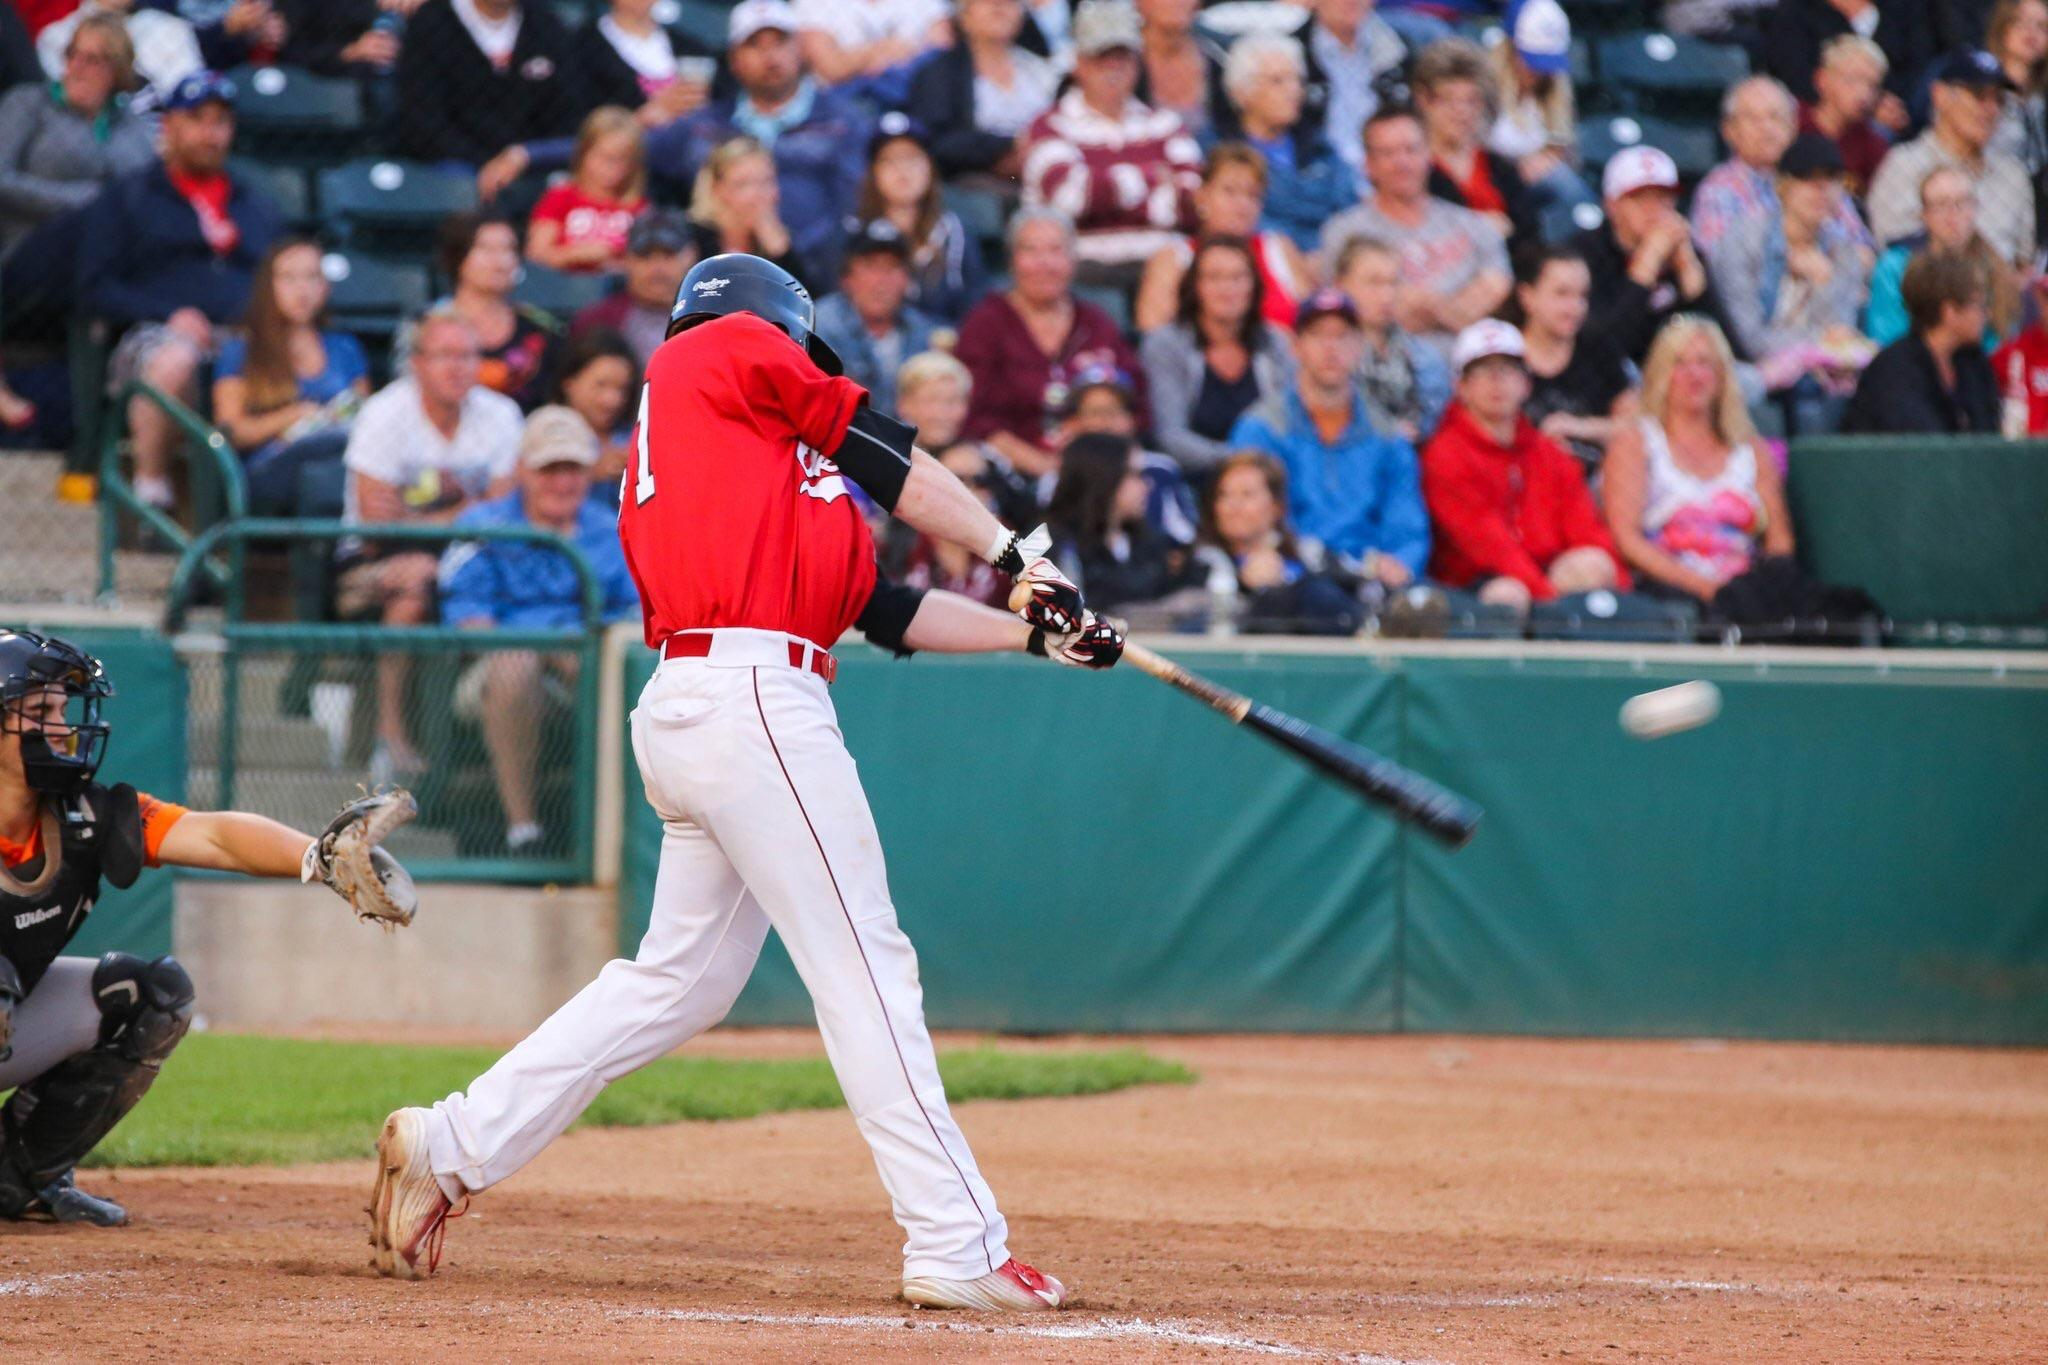 Okotoks Dawgs alum Justin King (Okotoks, Alta.) was an offensive force for the Alabama Crimson Tide during their five games this past week. Photo: Okotoks Dawgs